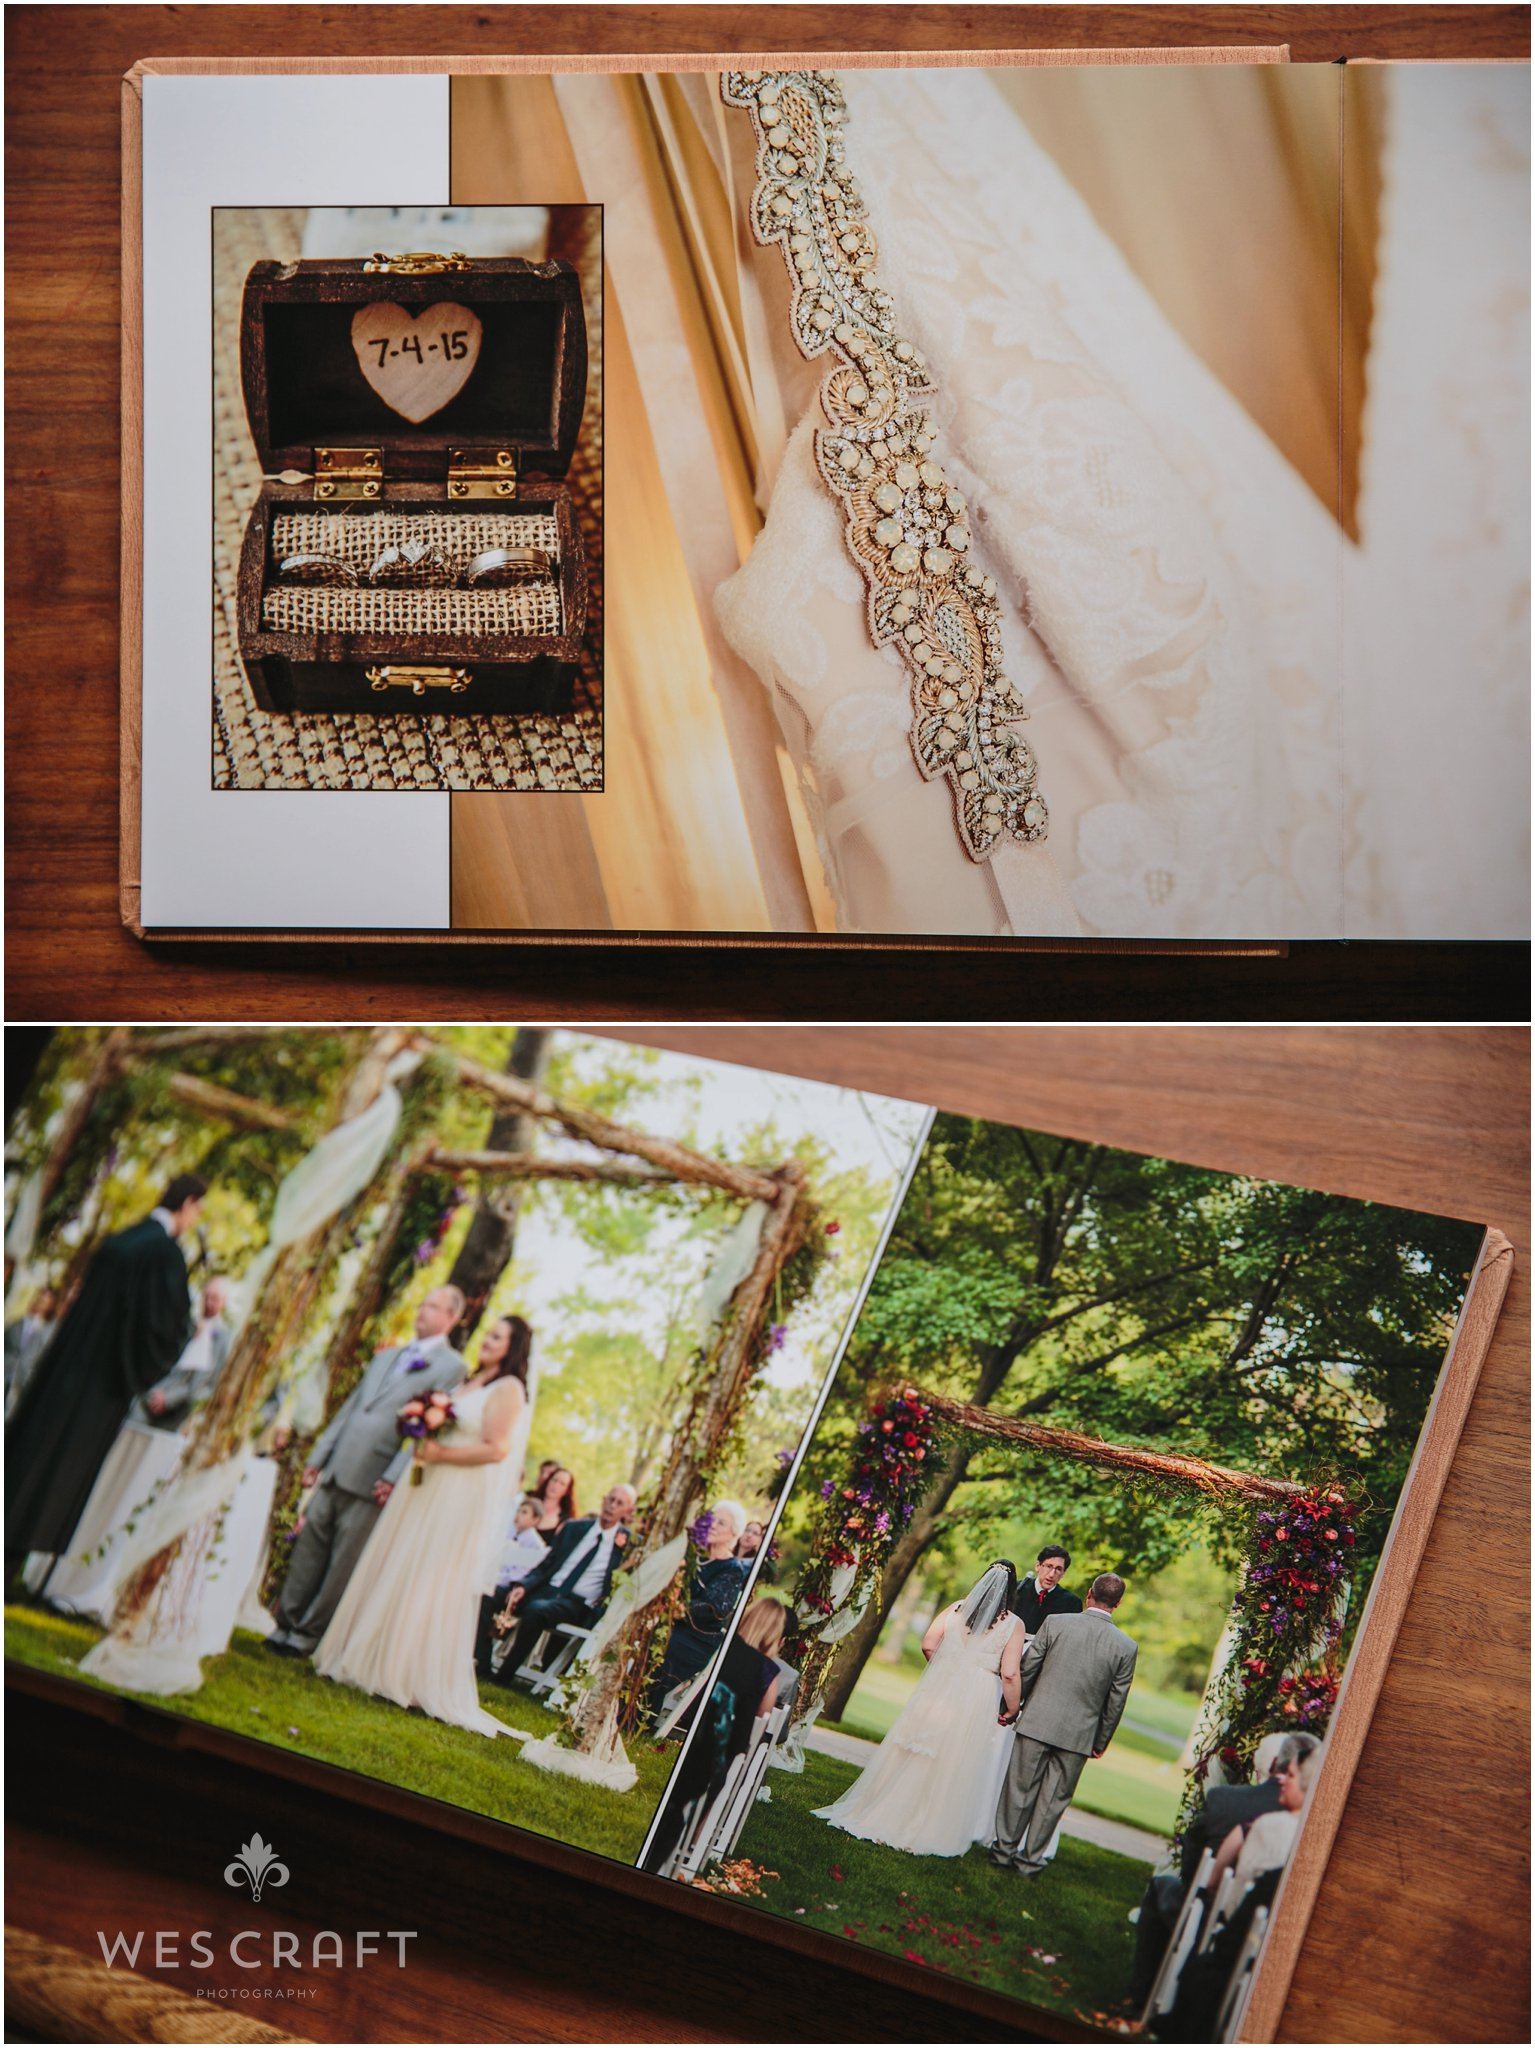 The wedding had rustic touches like a chuppah made of branches and wedding details from Etsy and BHLDN.